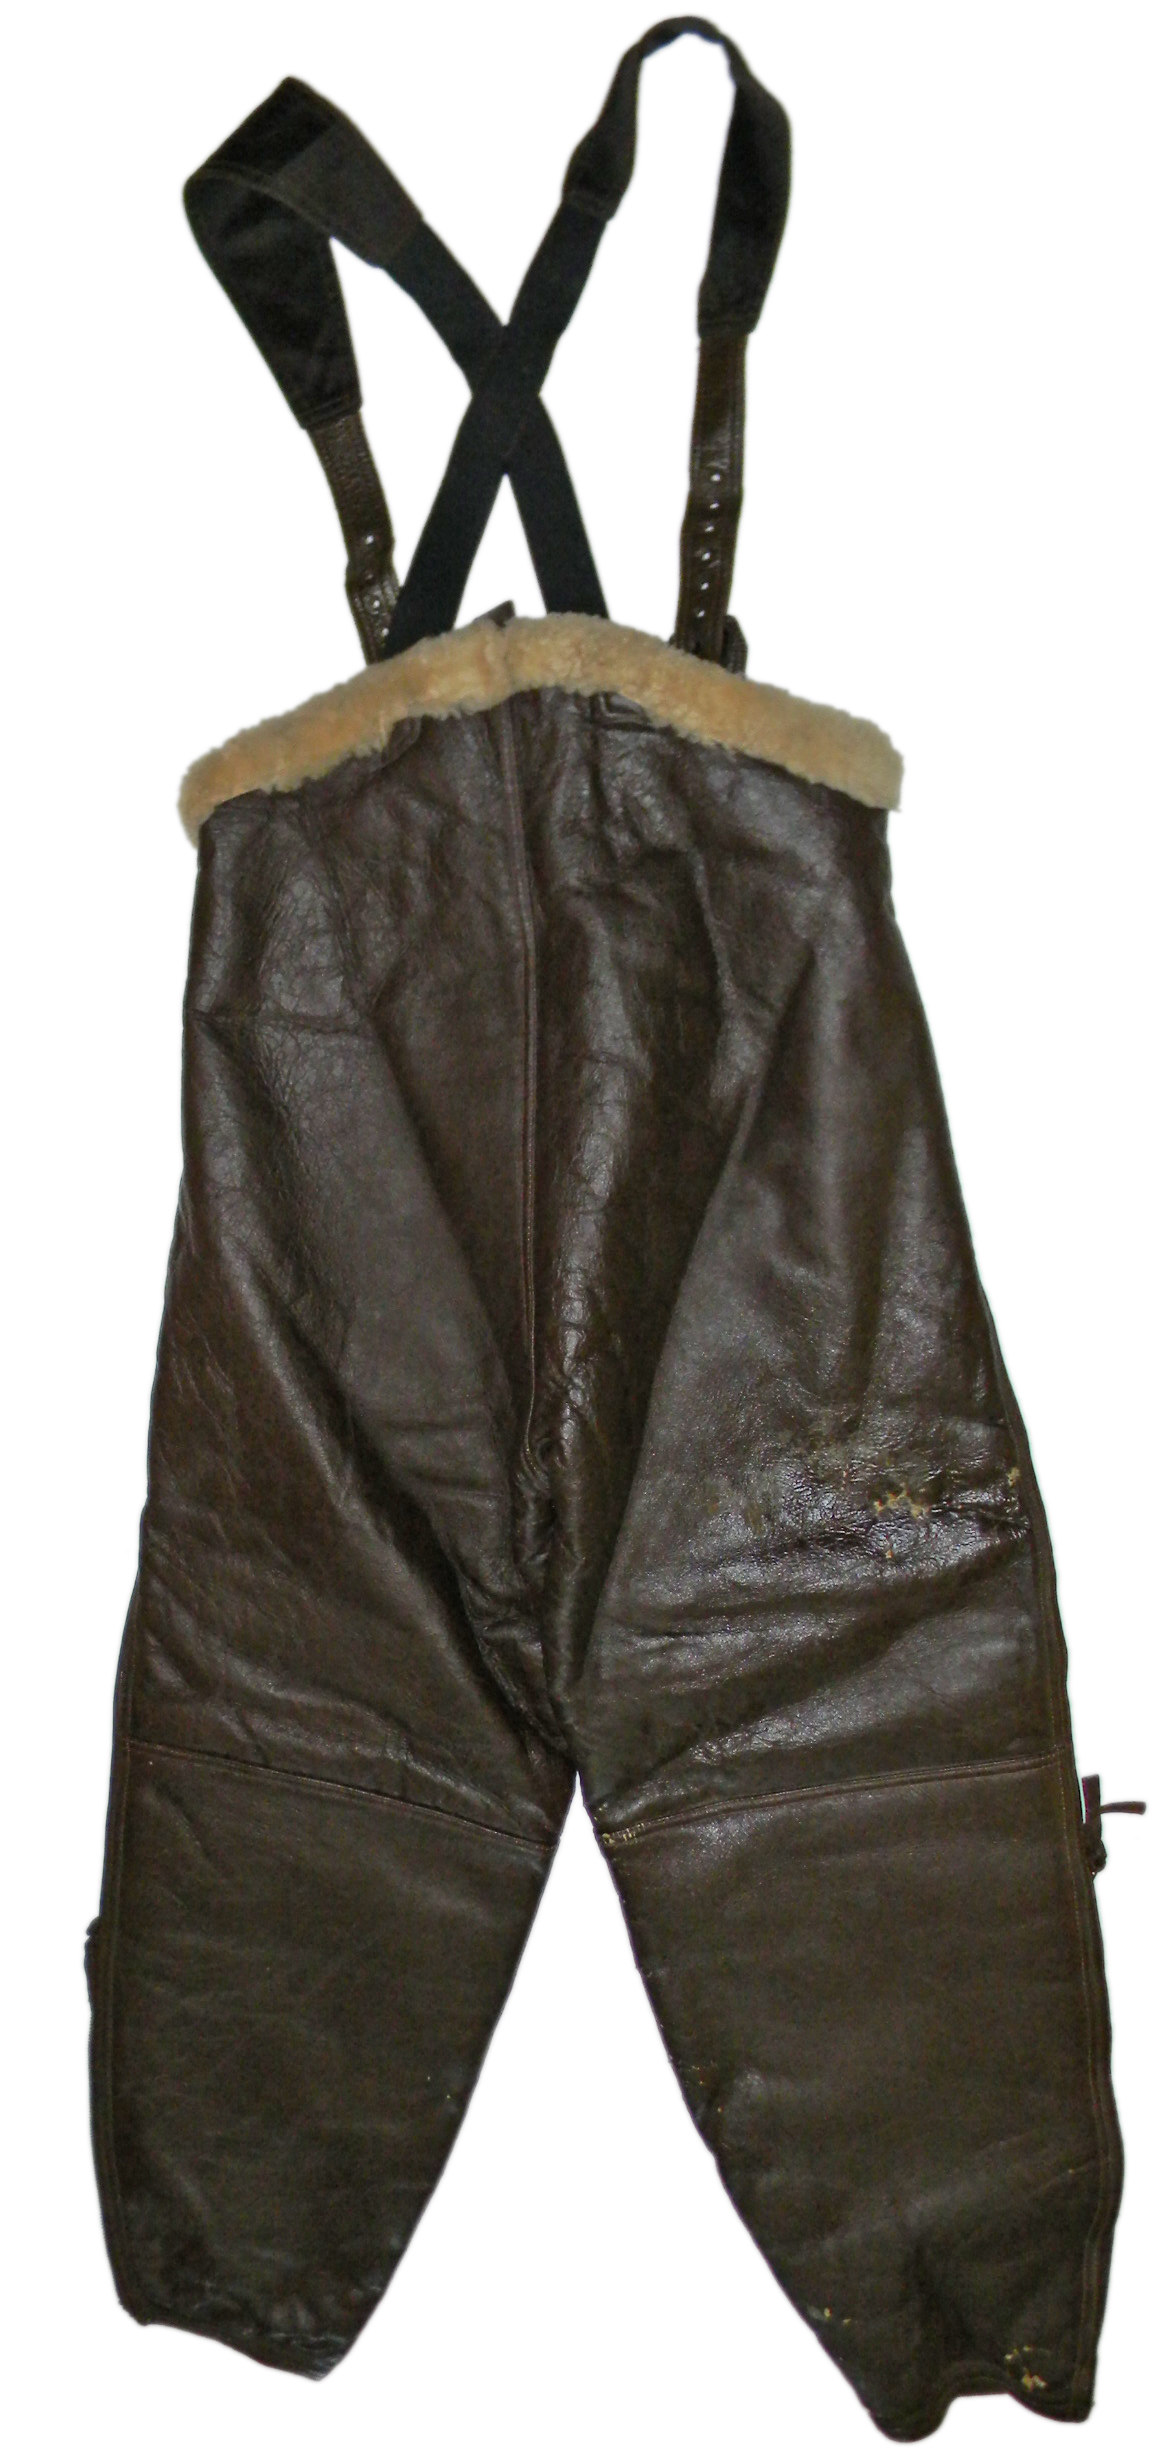 AAF AN-T-13 flight pants